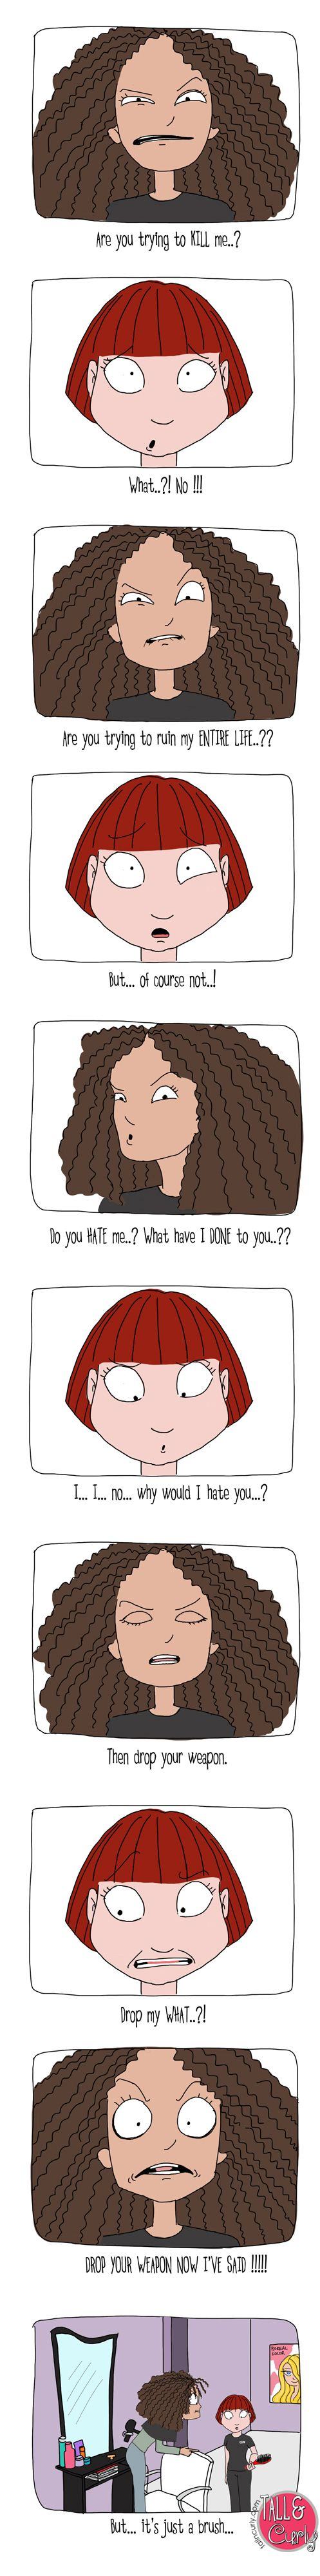 LOL.  This is soooo me in the salon.  #threatened